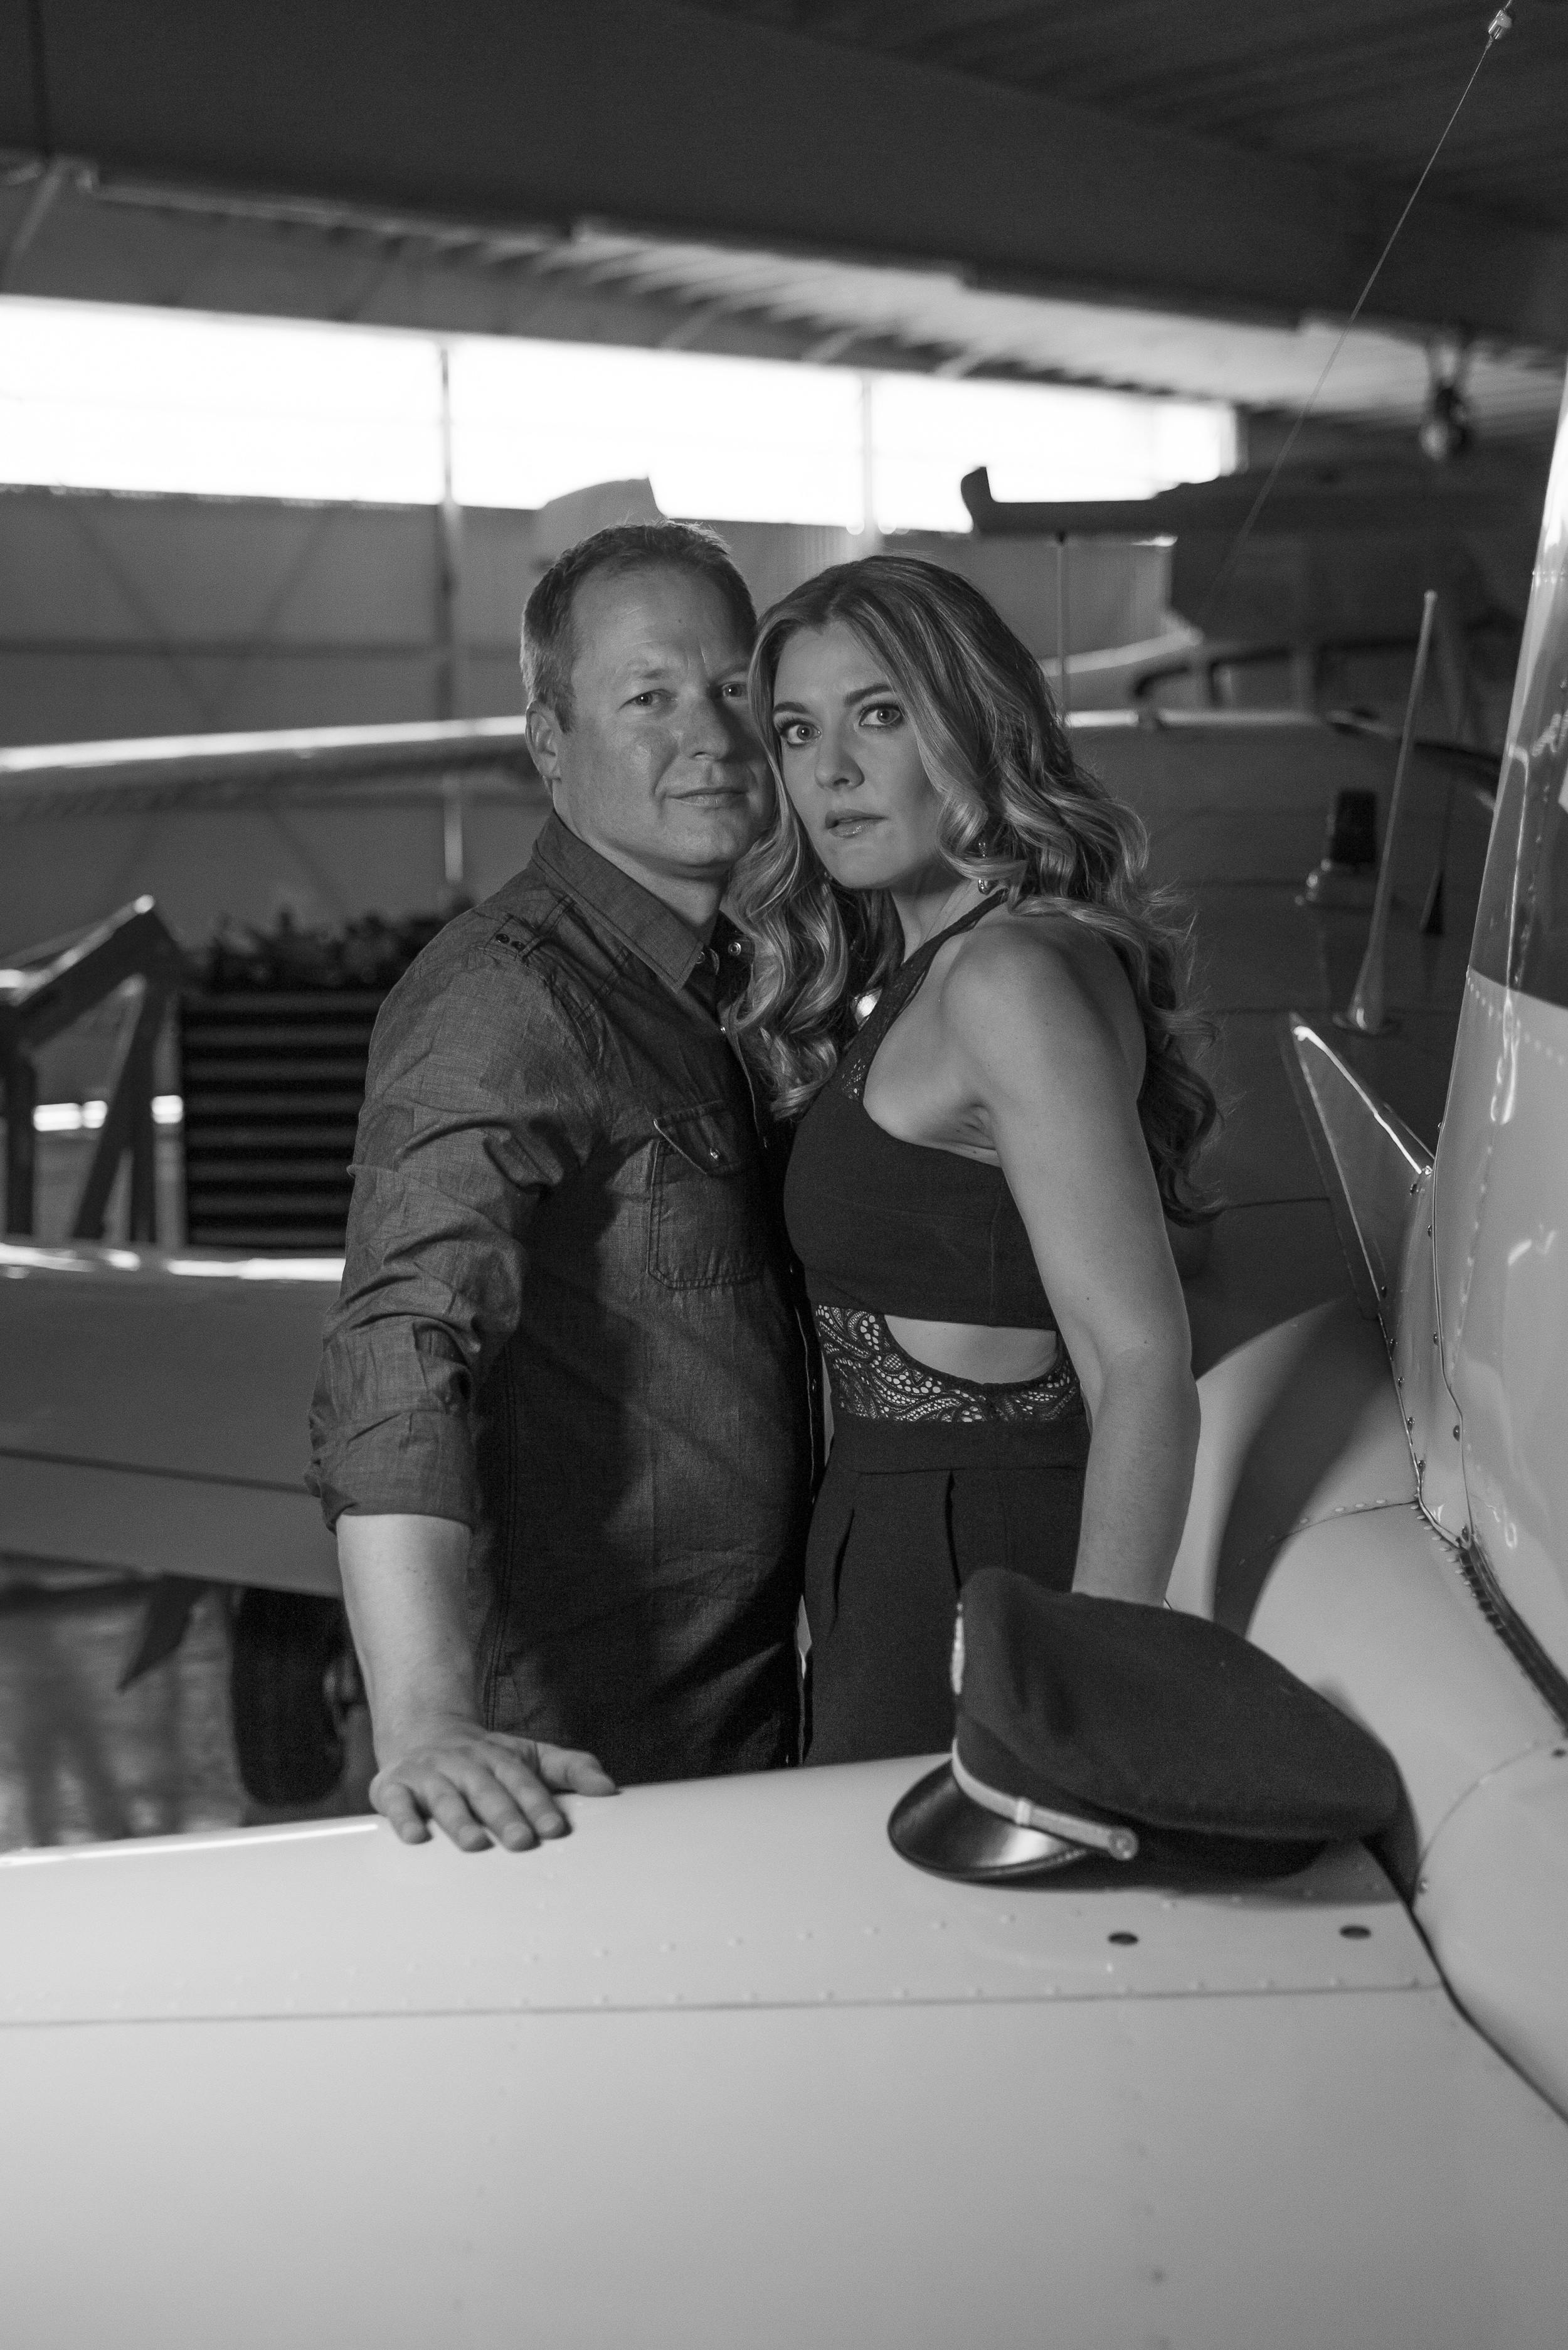 Destination Wedding Planner Andrea Eppolito | Engagement Photos in an Airplane Hanger | Images by  AltF Photography  | Black and White images with a plane